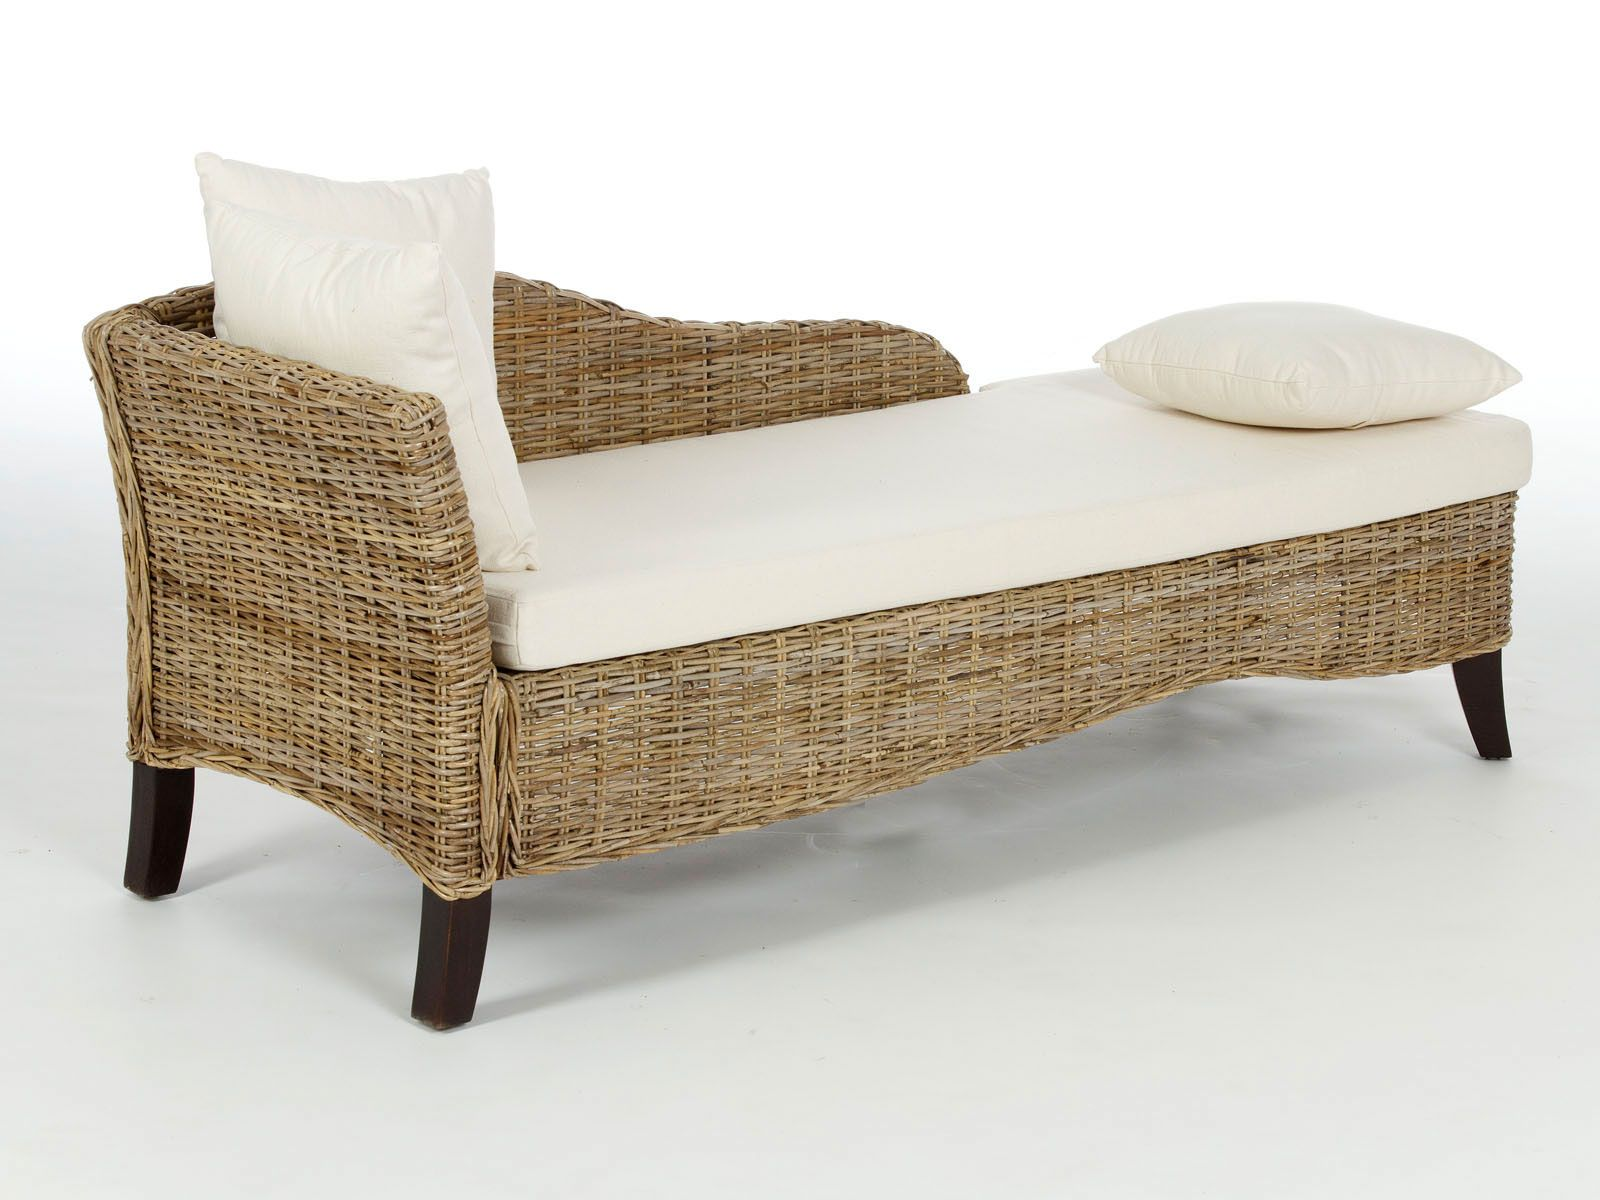 Image of: Antique Wicker Sofa